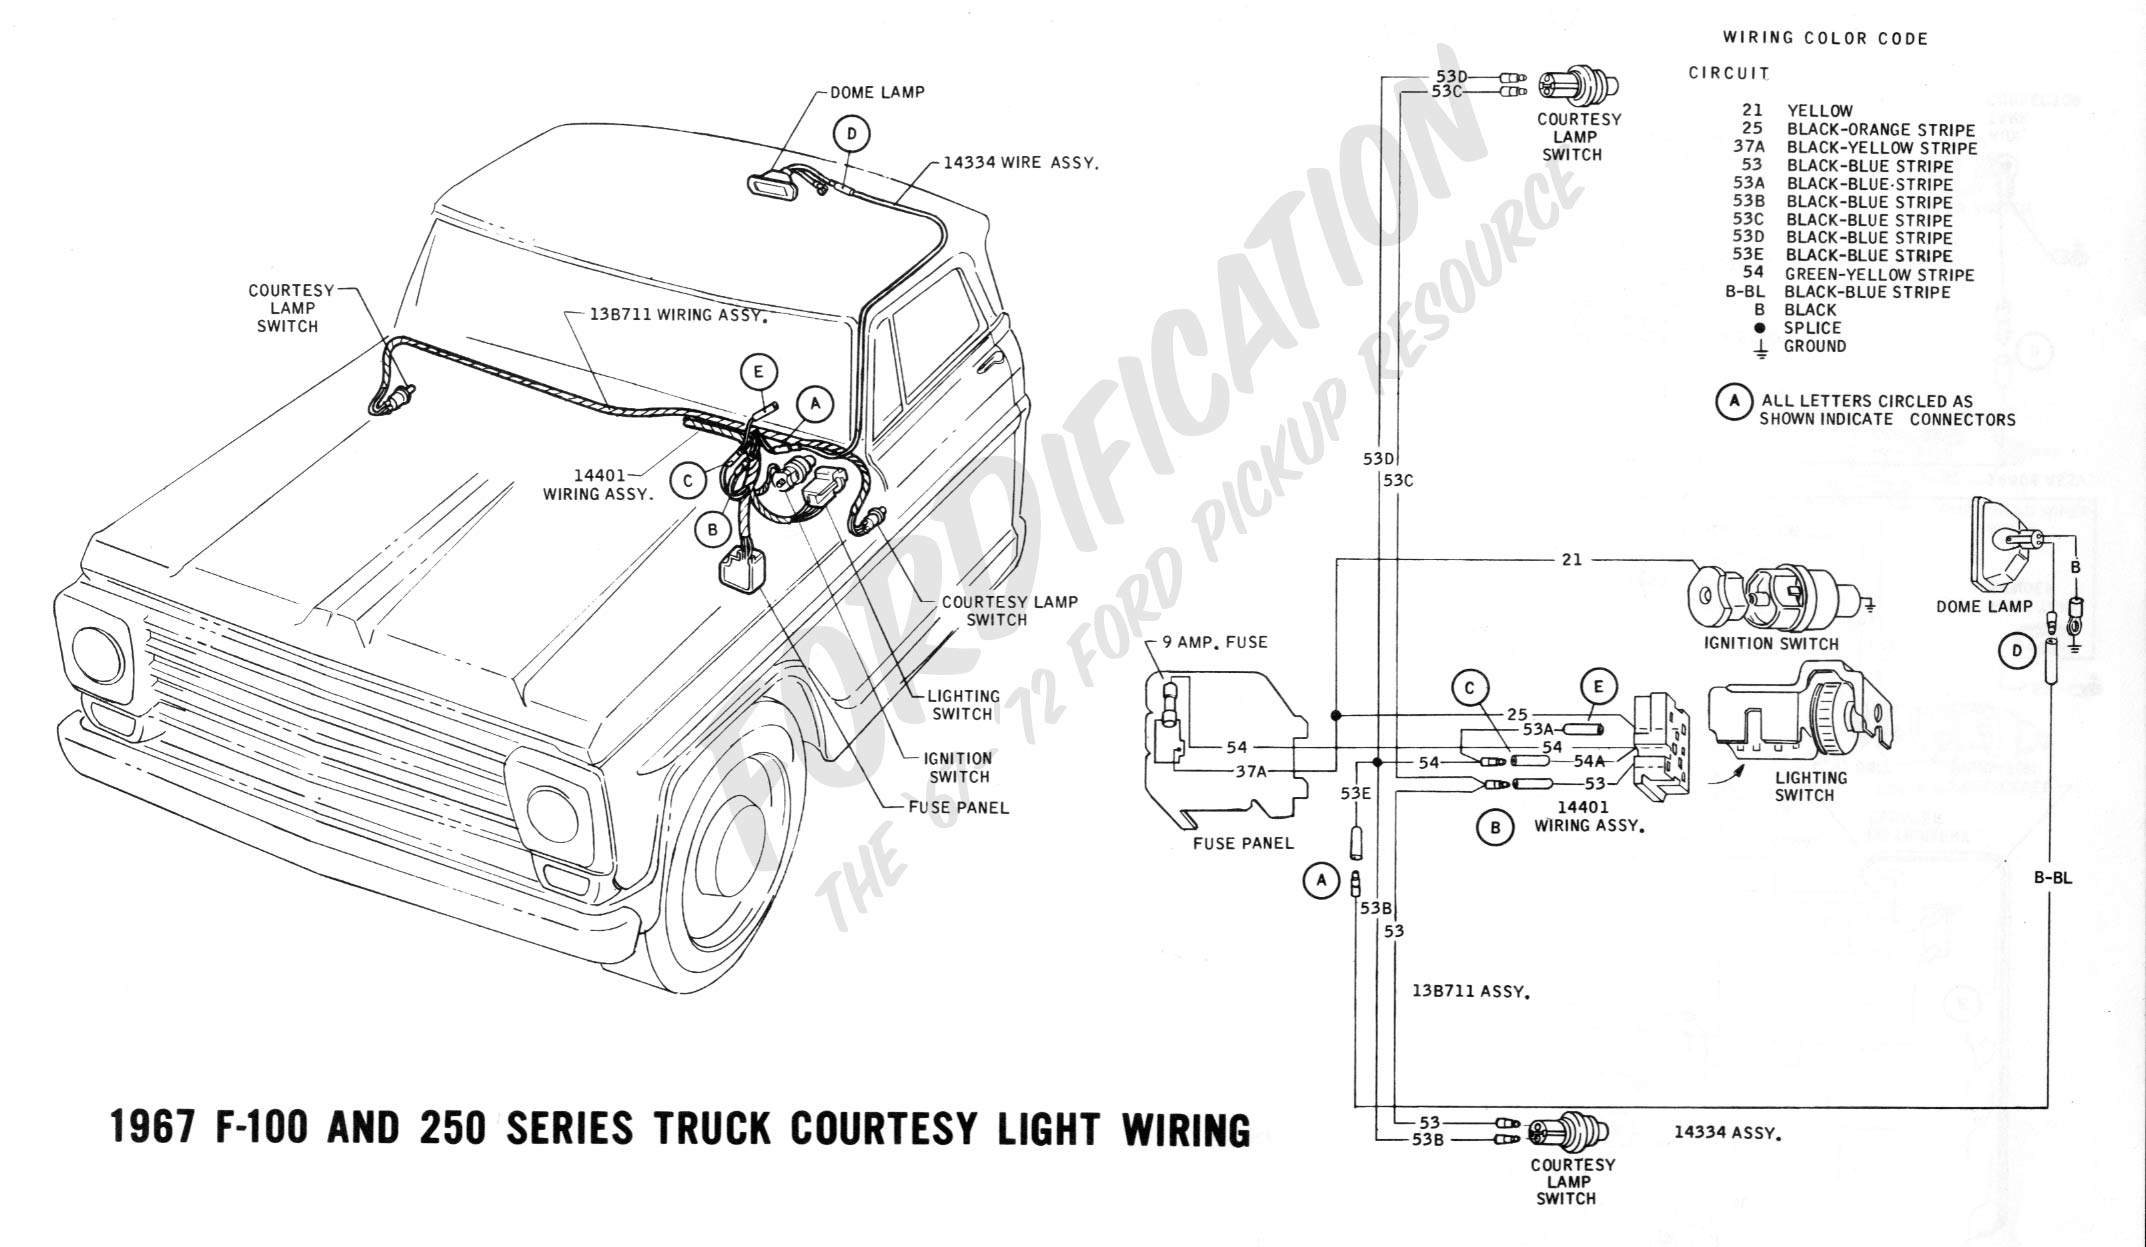 1967 ford f250 wiring diagram 1967 ford mustang wiring diagram manual #5